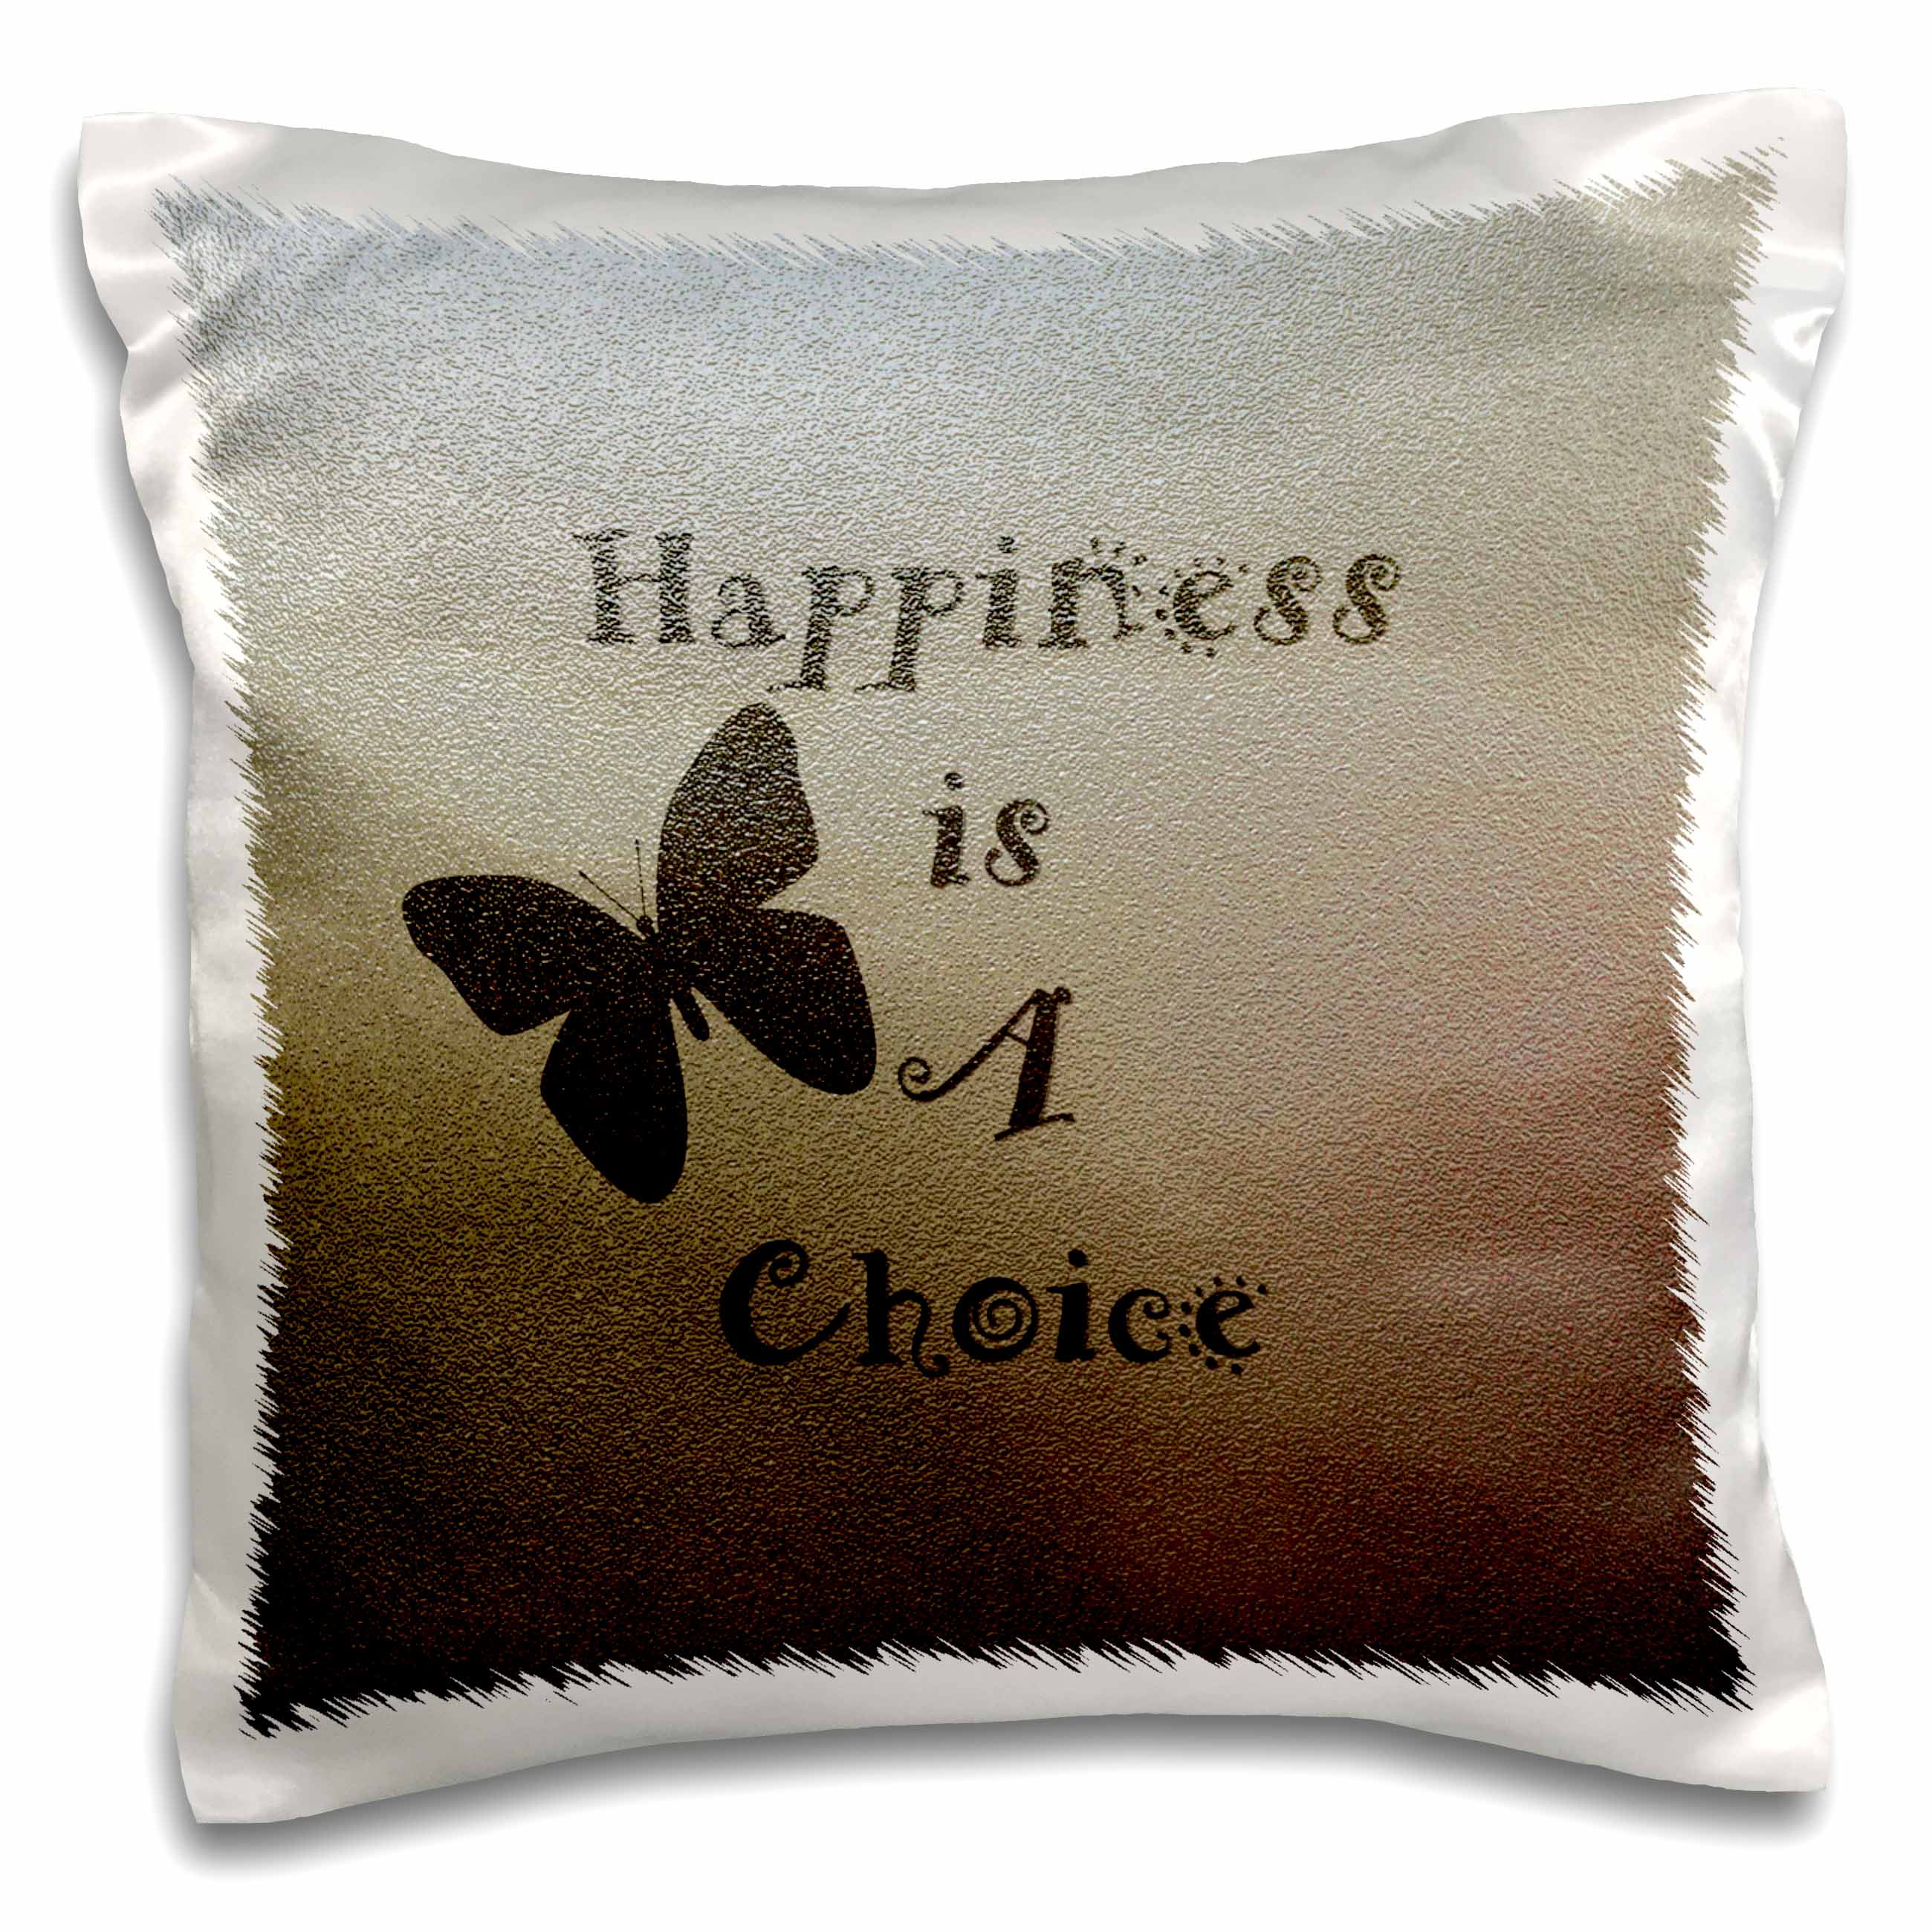 3dRose Gold Textured Happiness is A Choice Butterfly - Inspired Art, Pillow Case, 16 by 16-inch